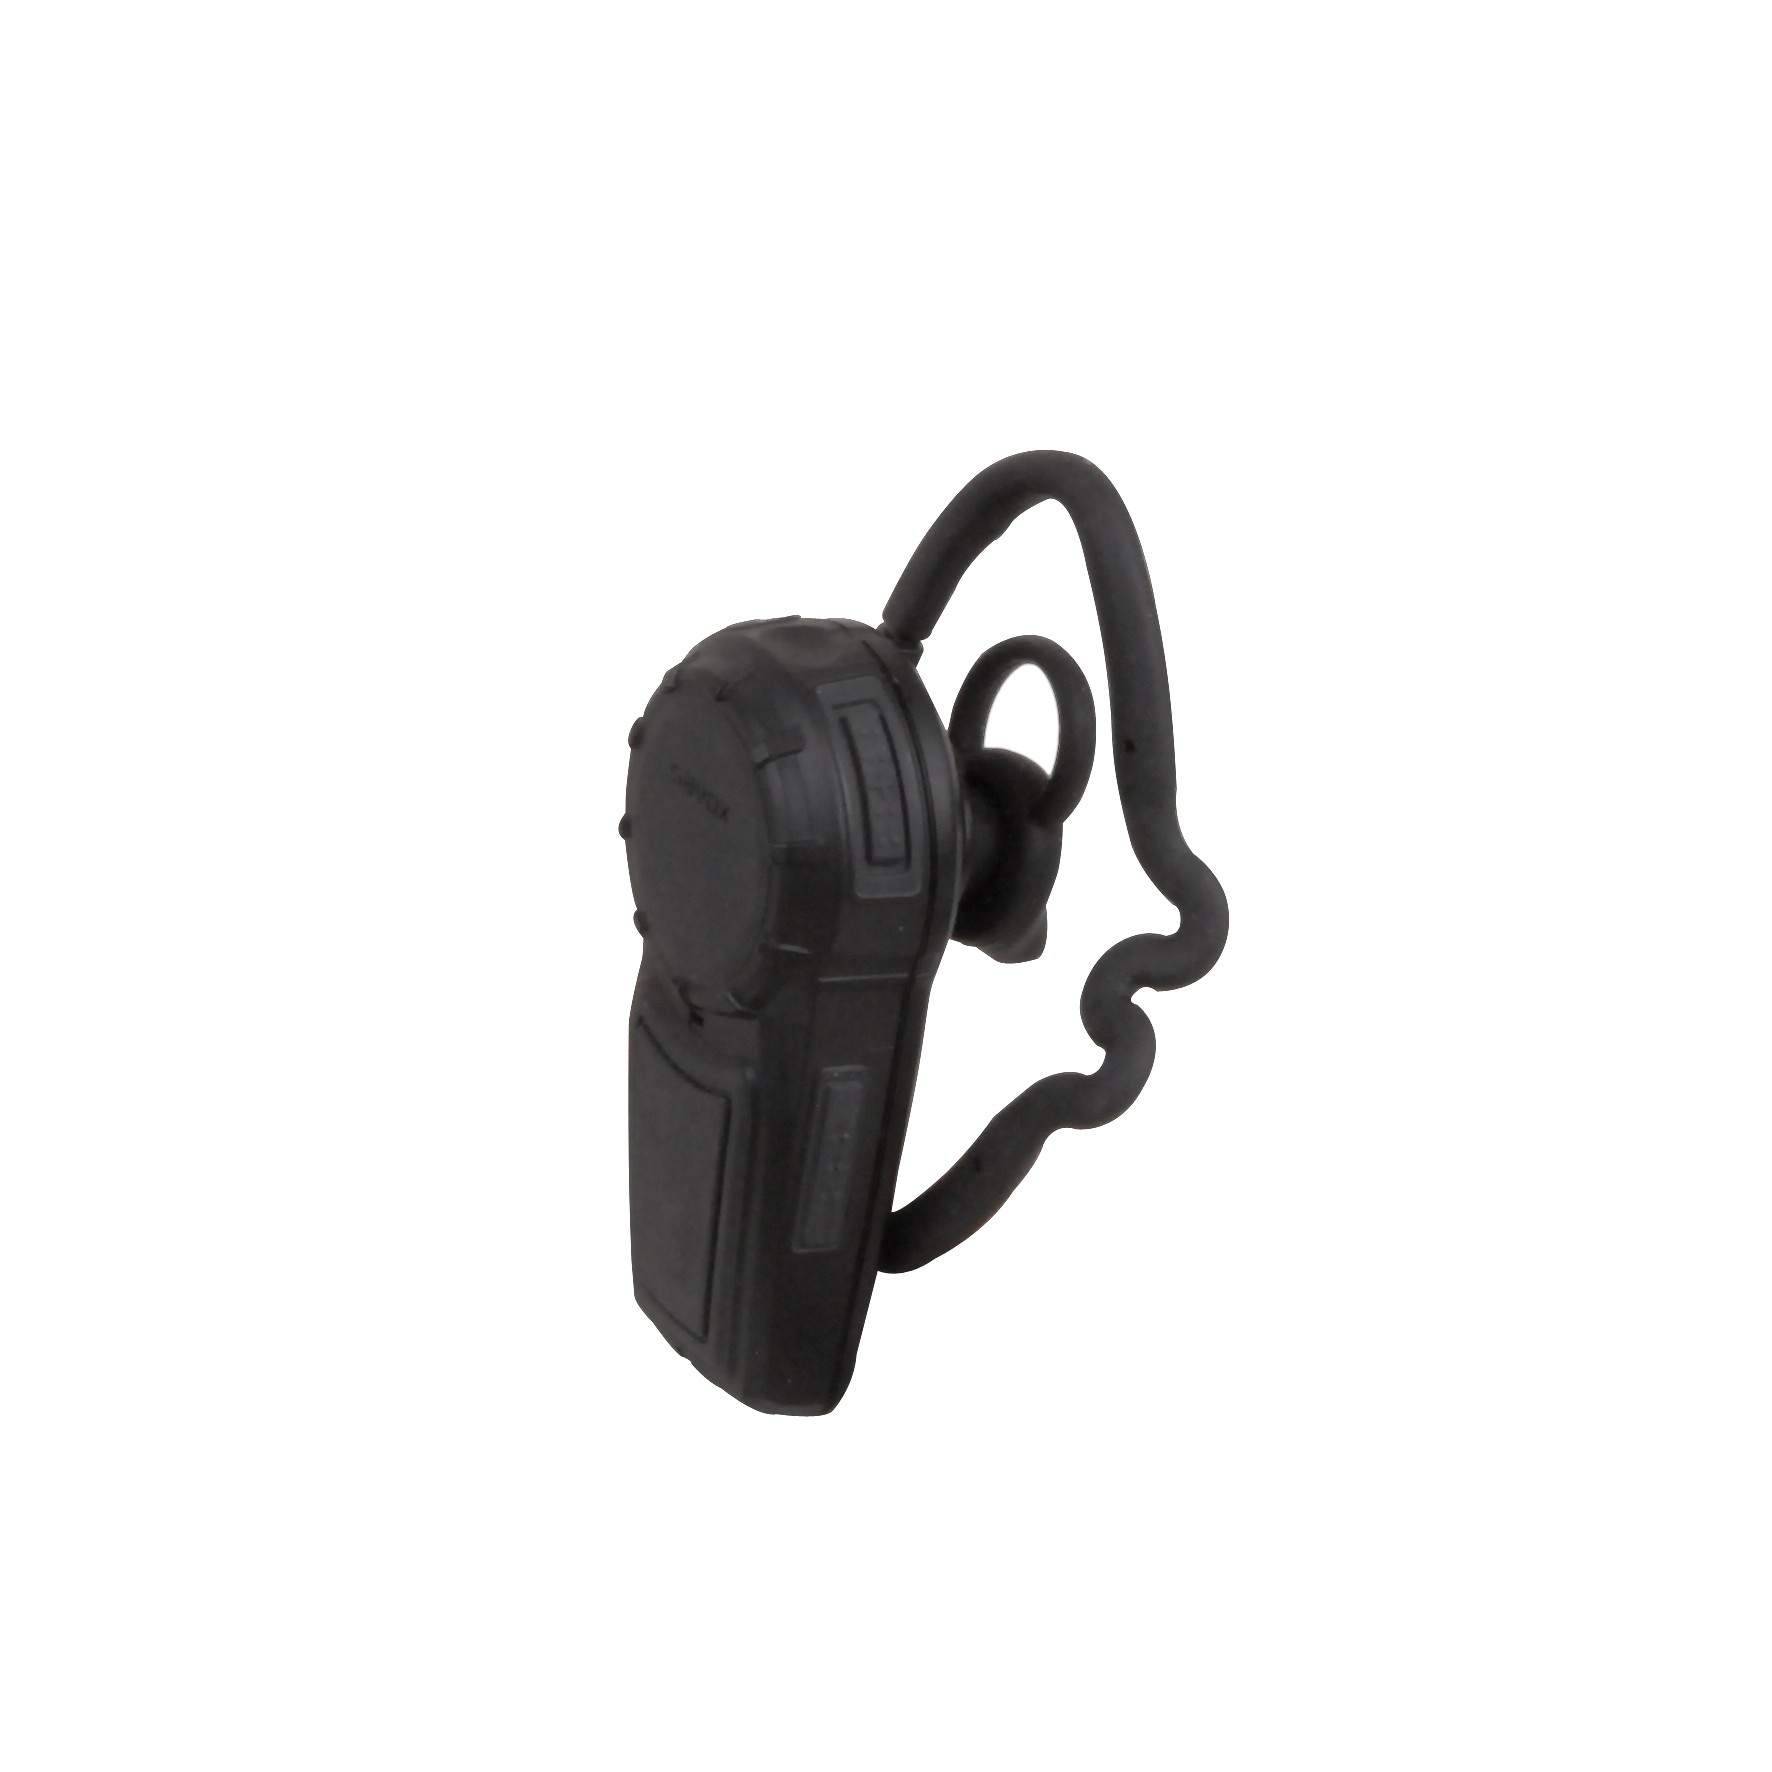 Hytera - Wireless Earpiece with Dual PTT